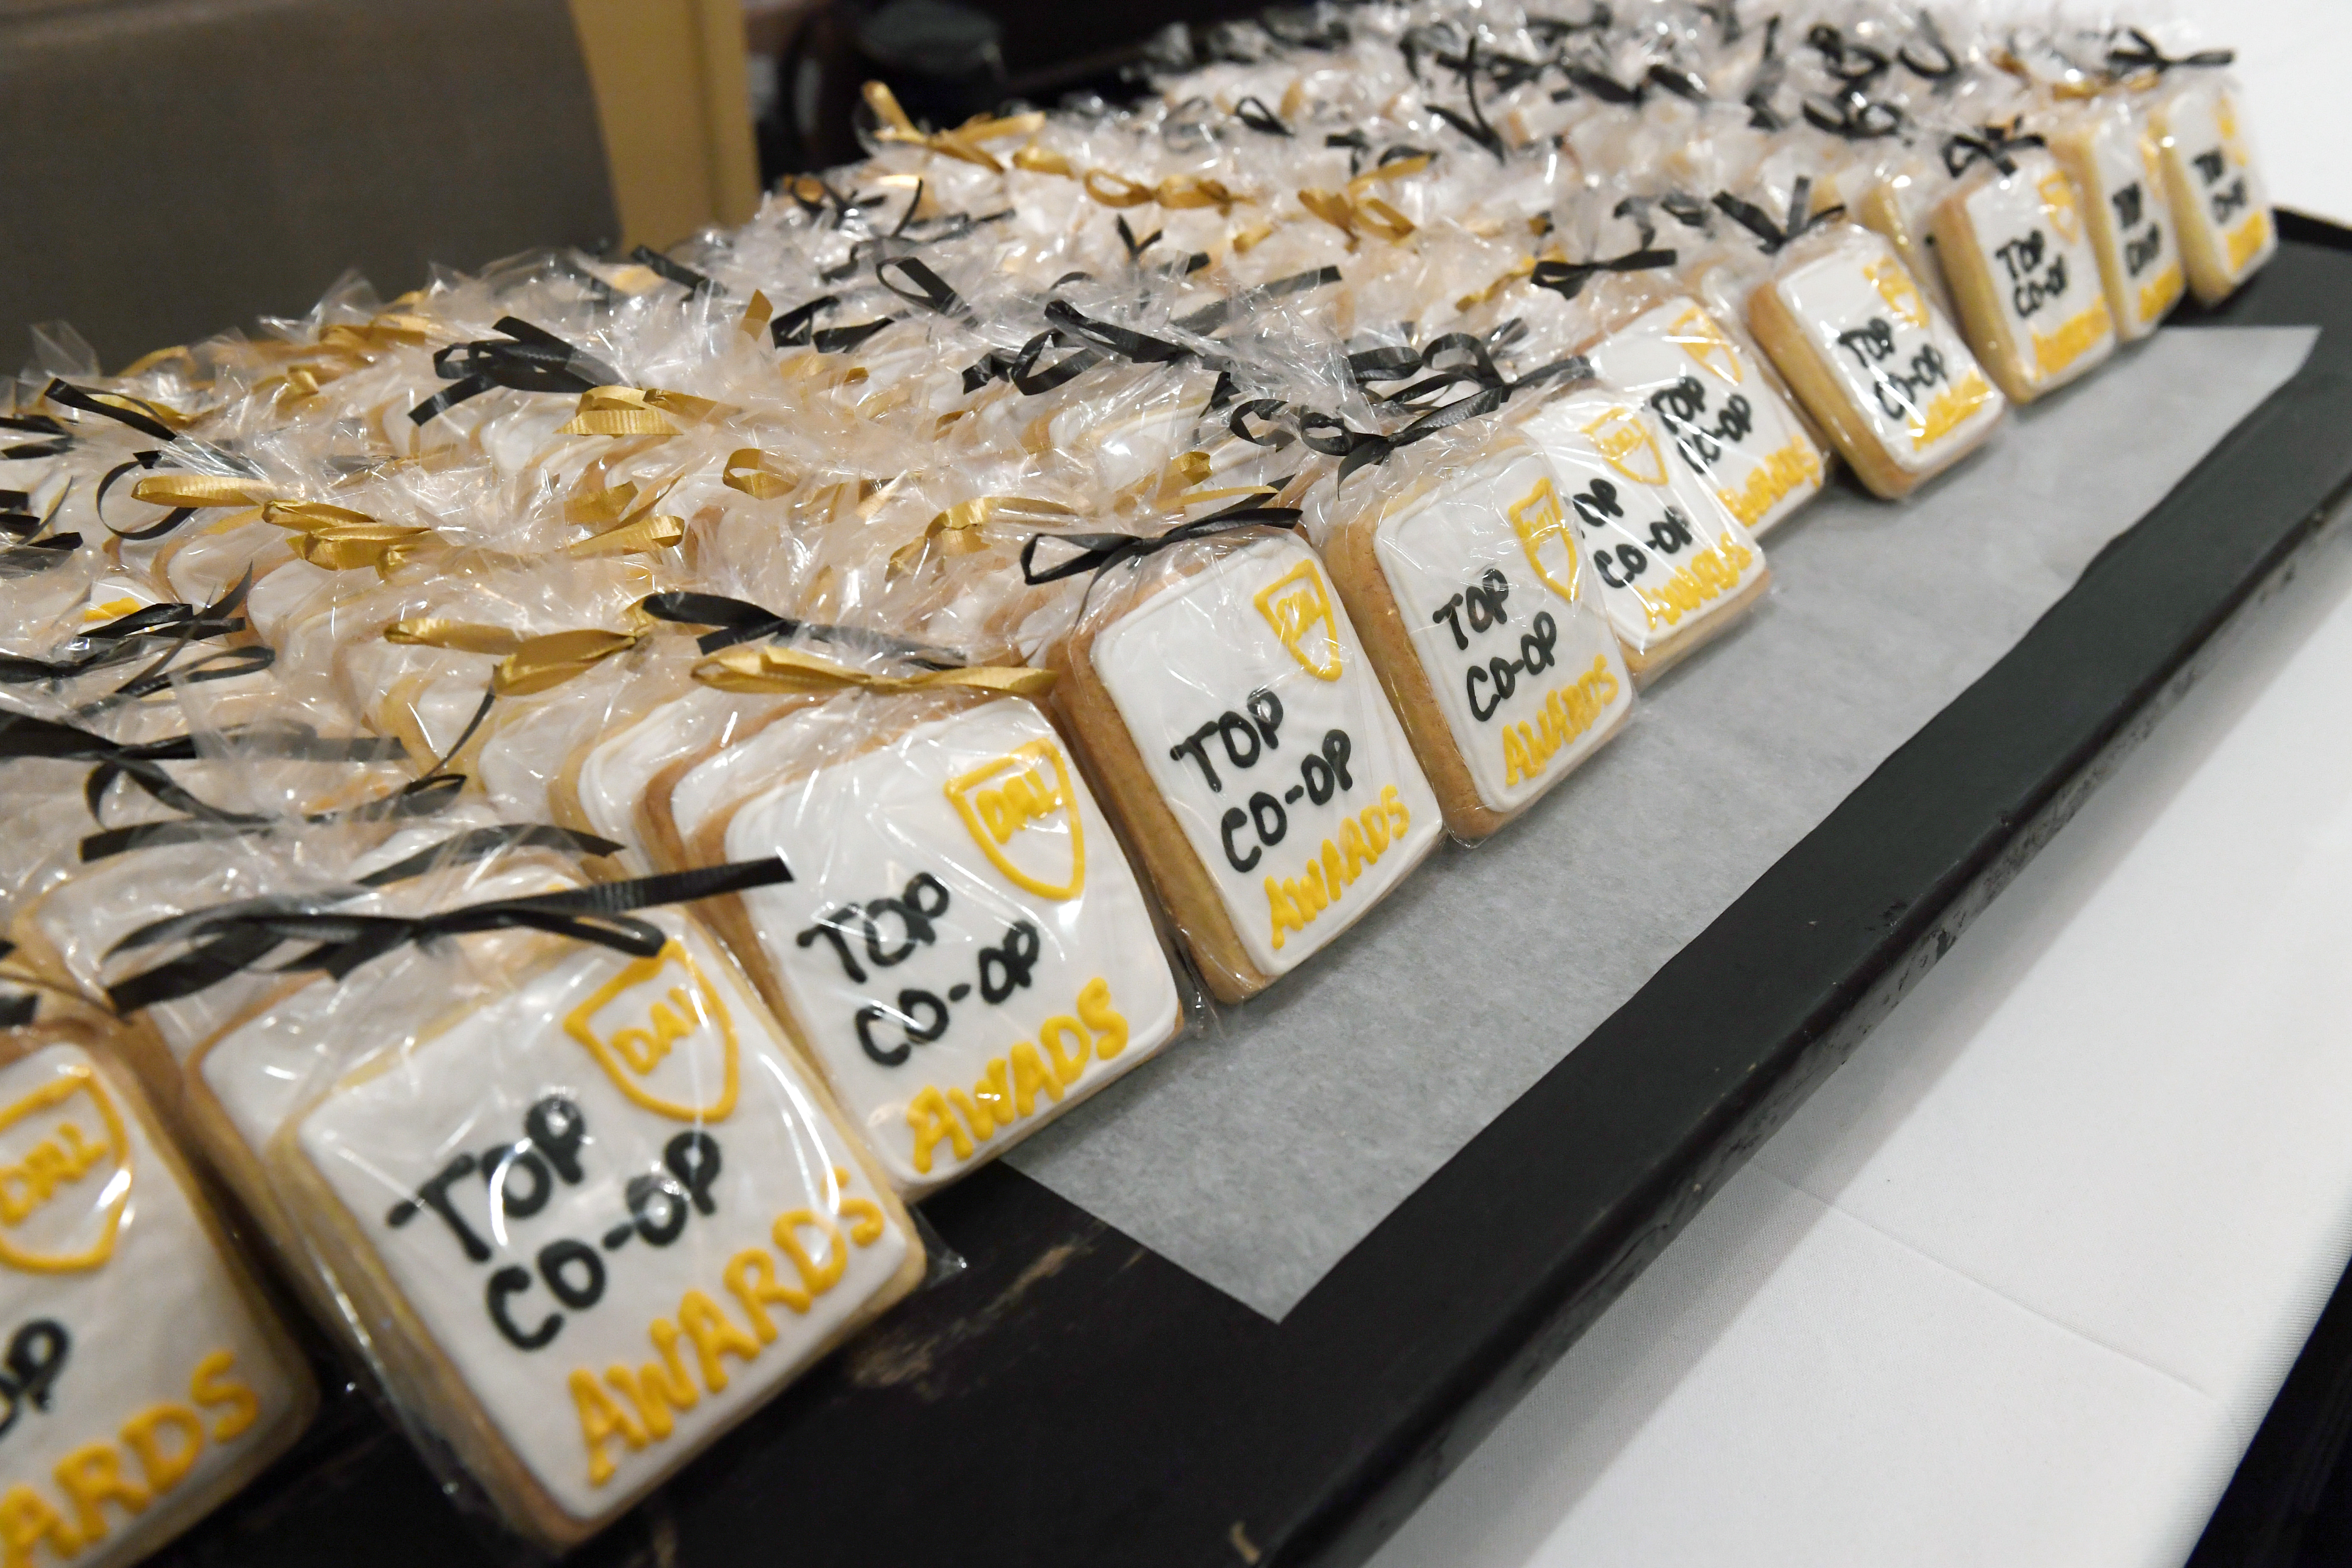 Celebrating the winners of the 2nd Annual Dalhousie Top Co-op Awards